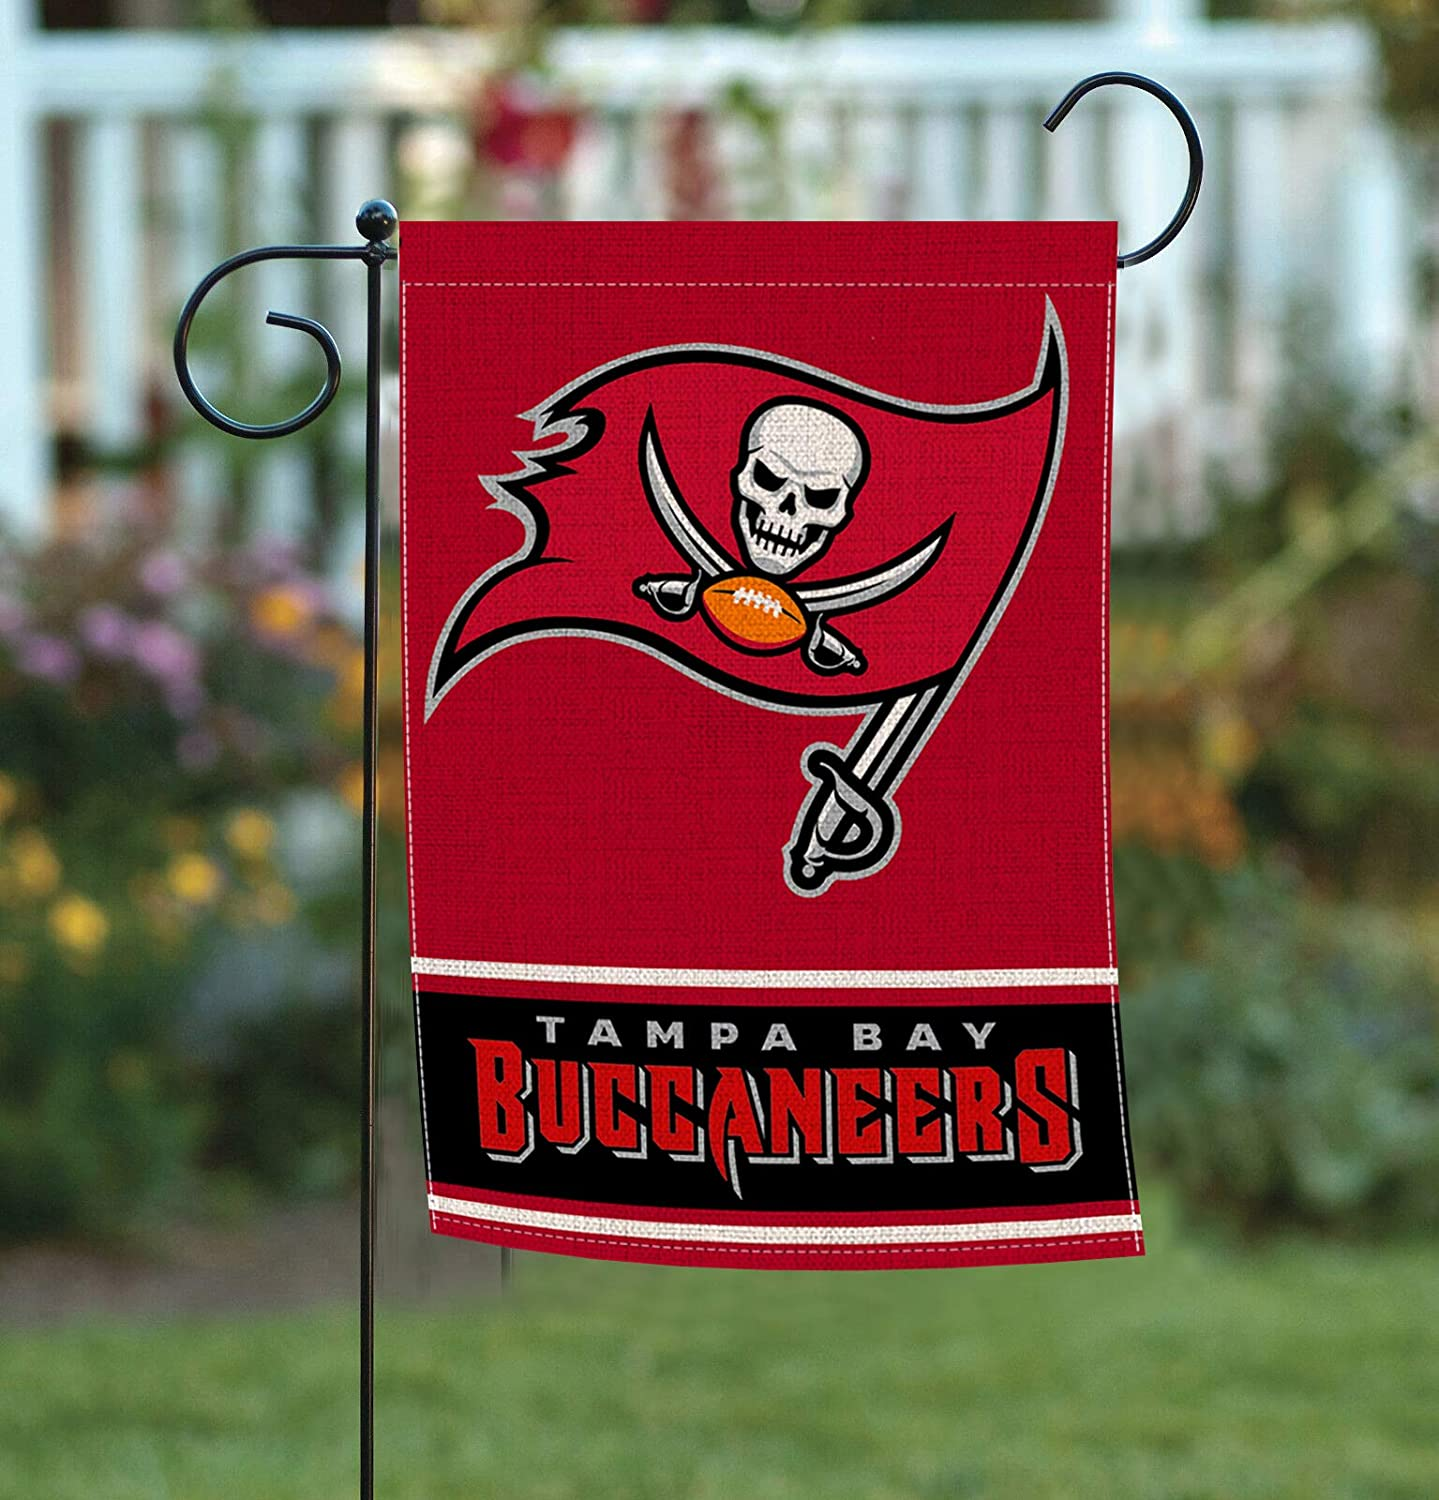 Garden Flags Double Sided 12.5 x 18 Inch, American Football Teams Pattern House Yard Sports Burlap Flags Decoration for Indoor Outdoor AG-36